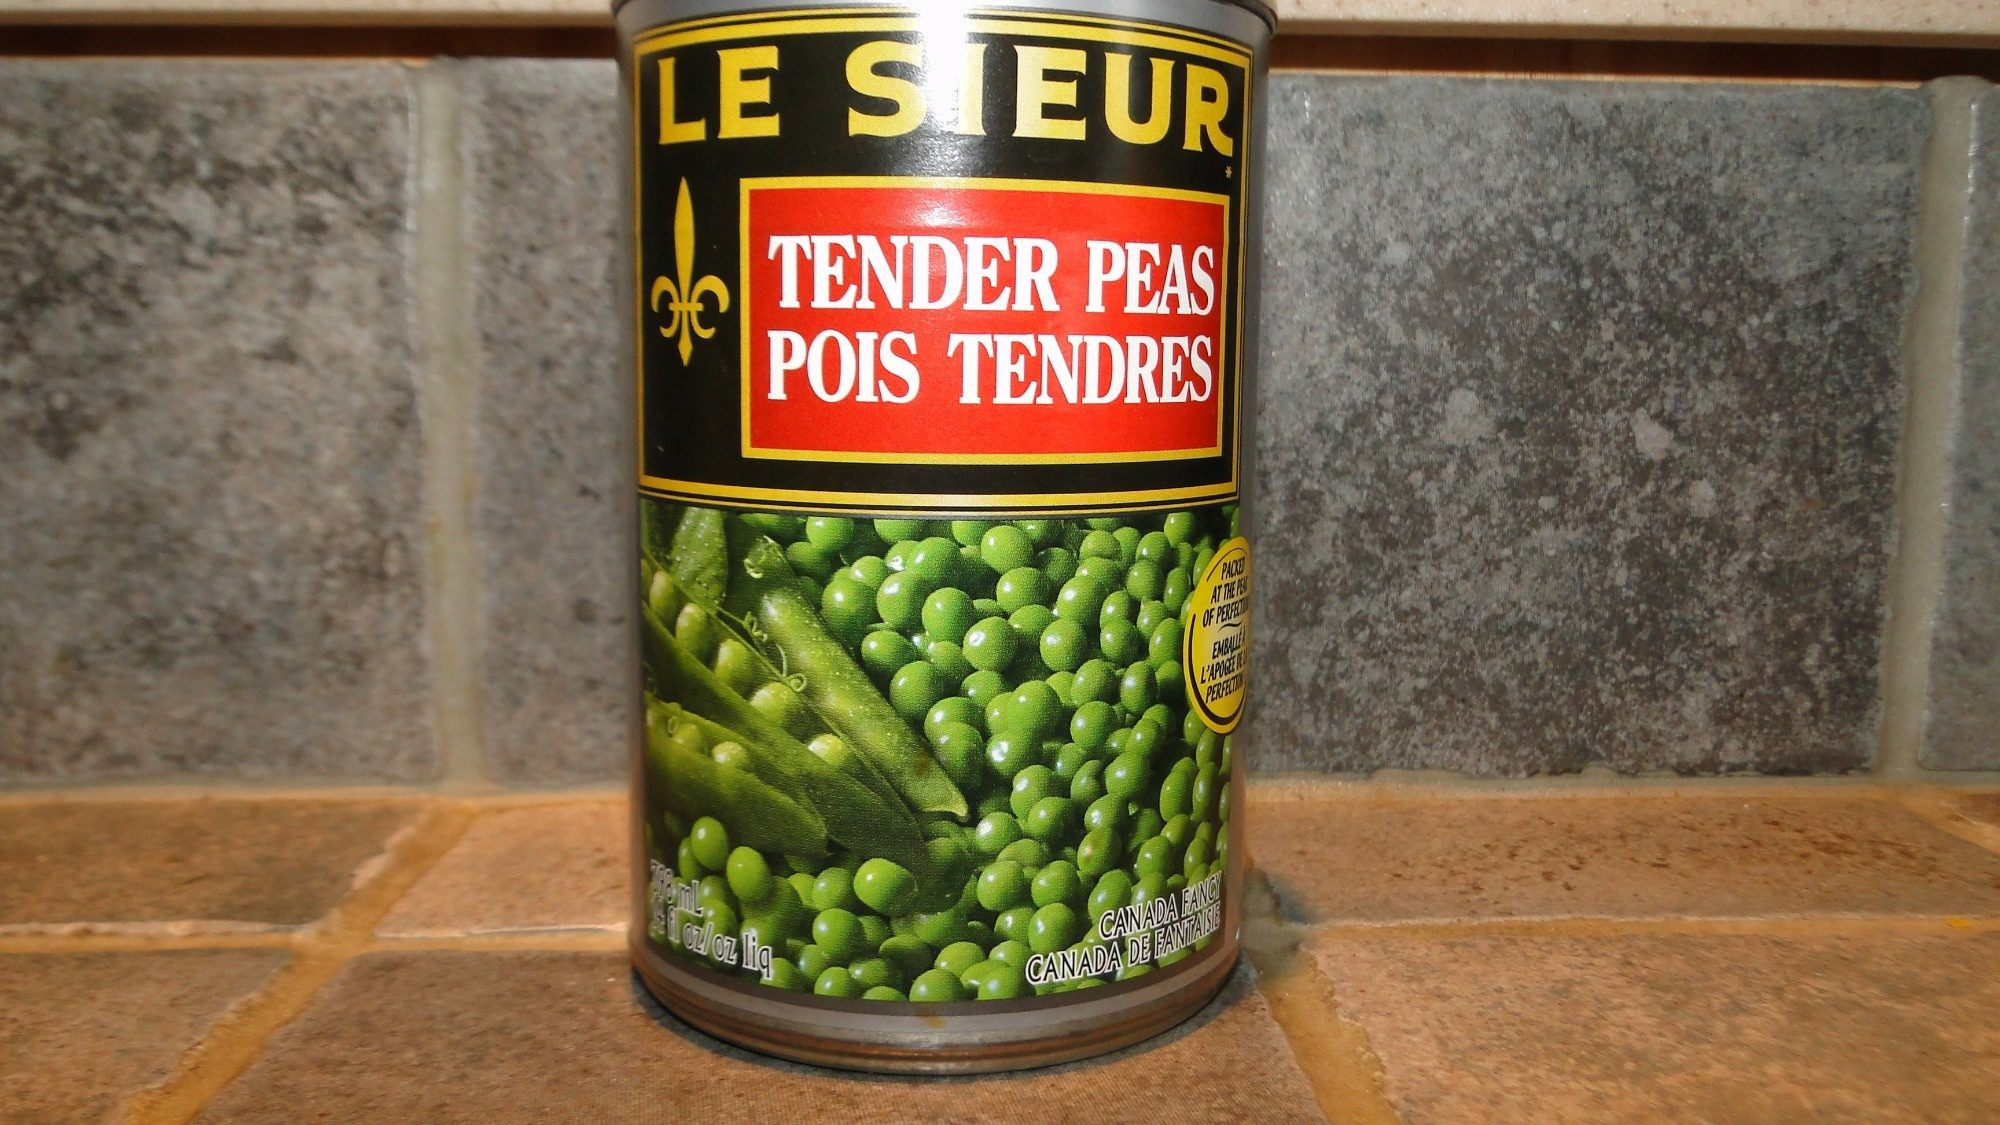 Pois tendres - Product - fr